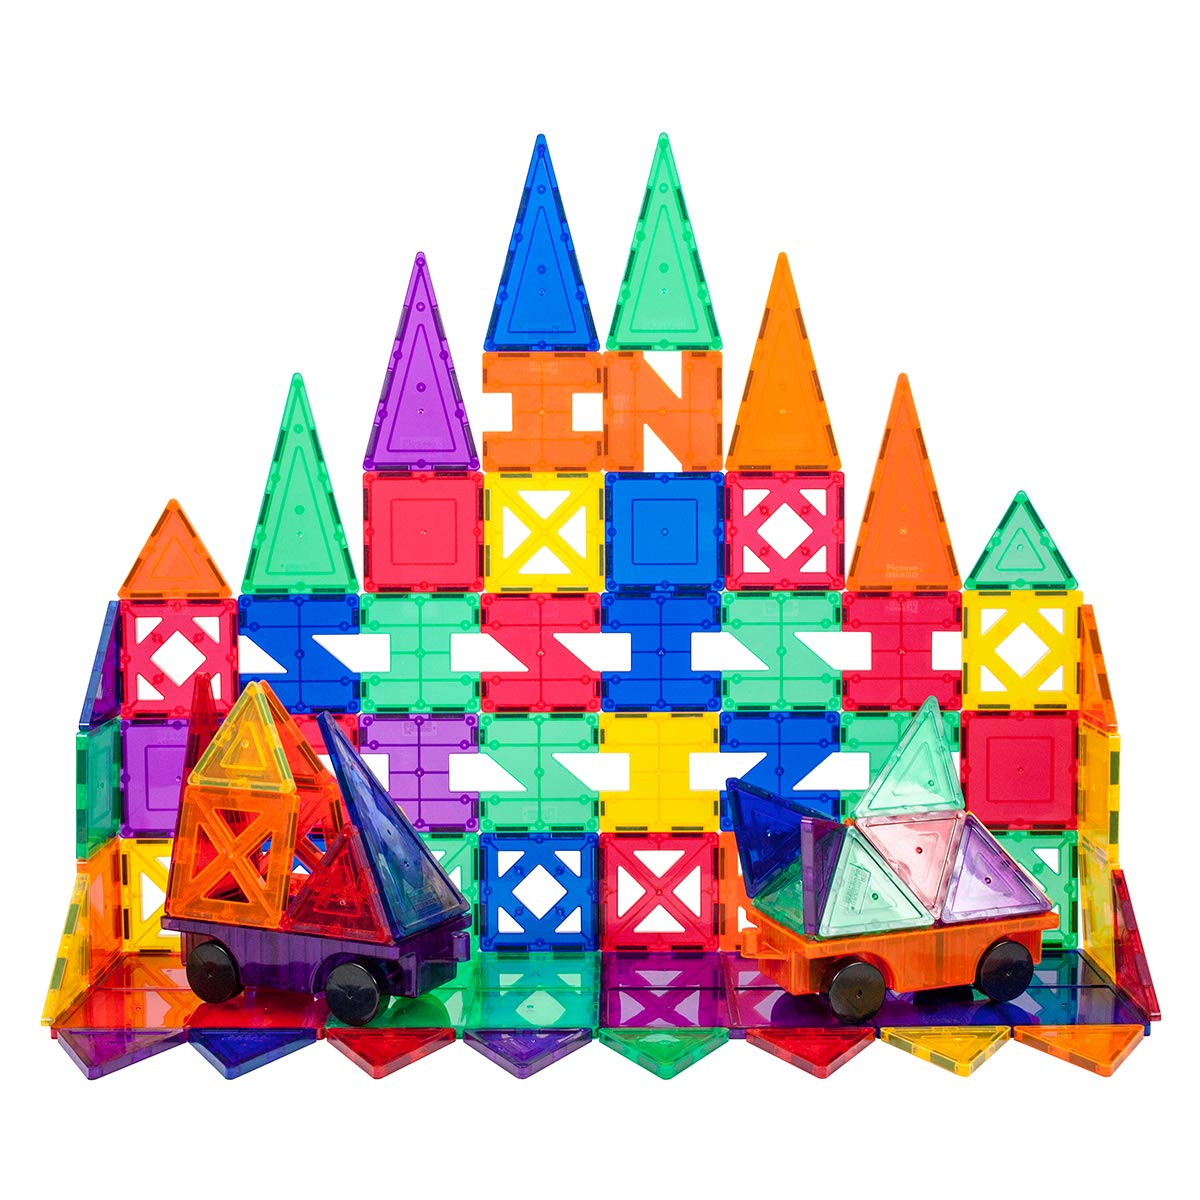 PicassoTiles Creativity 82 Piece Set Magnet Building Tiles Clear Color Magnetic 3D Building Block by Picasso Tiles